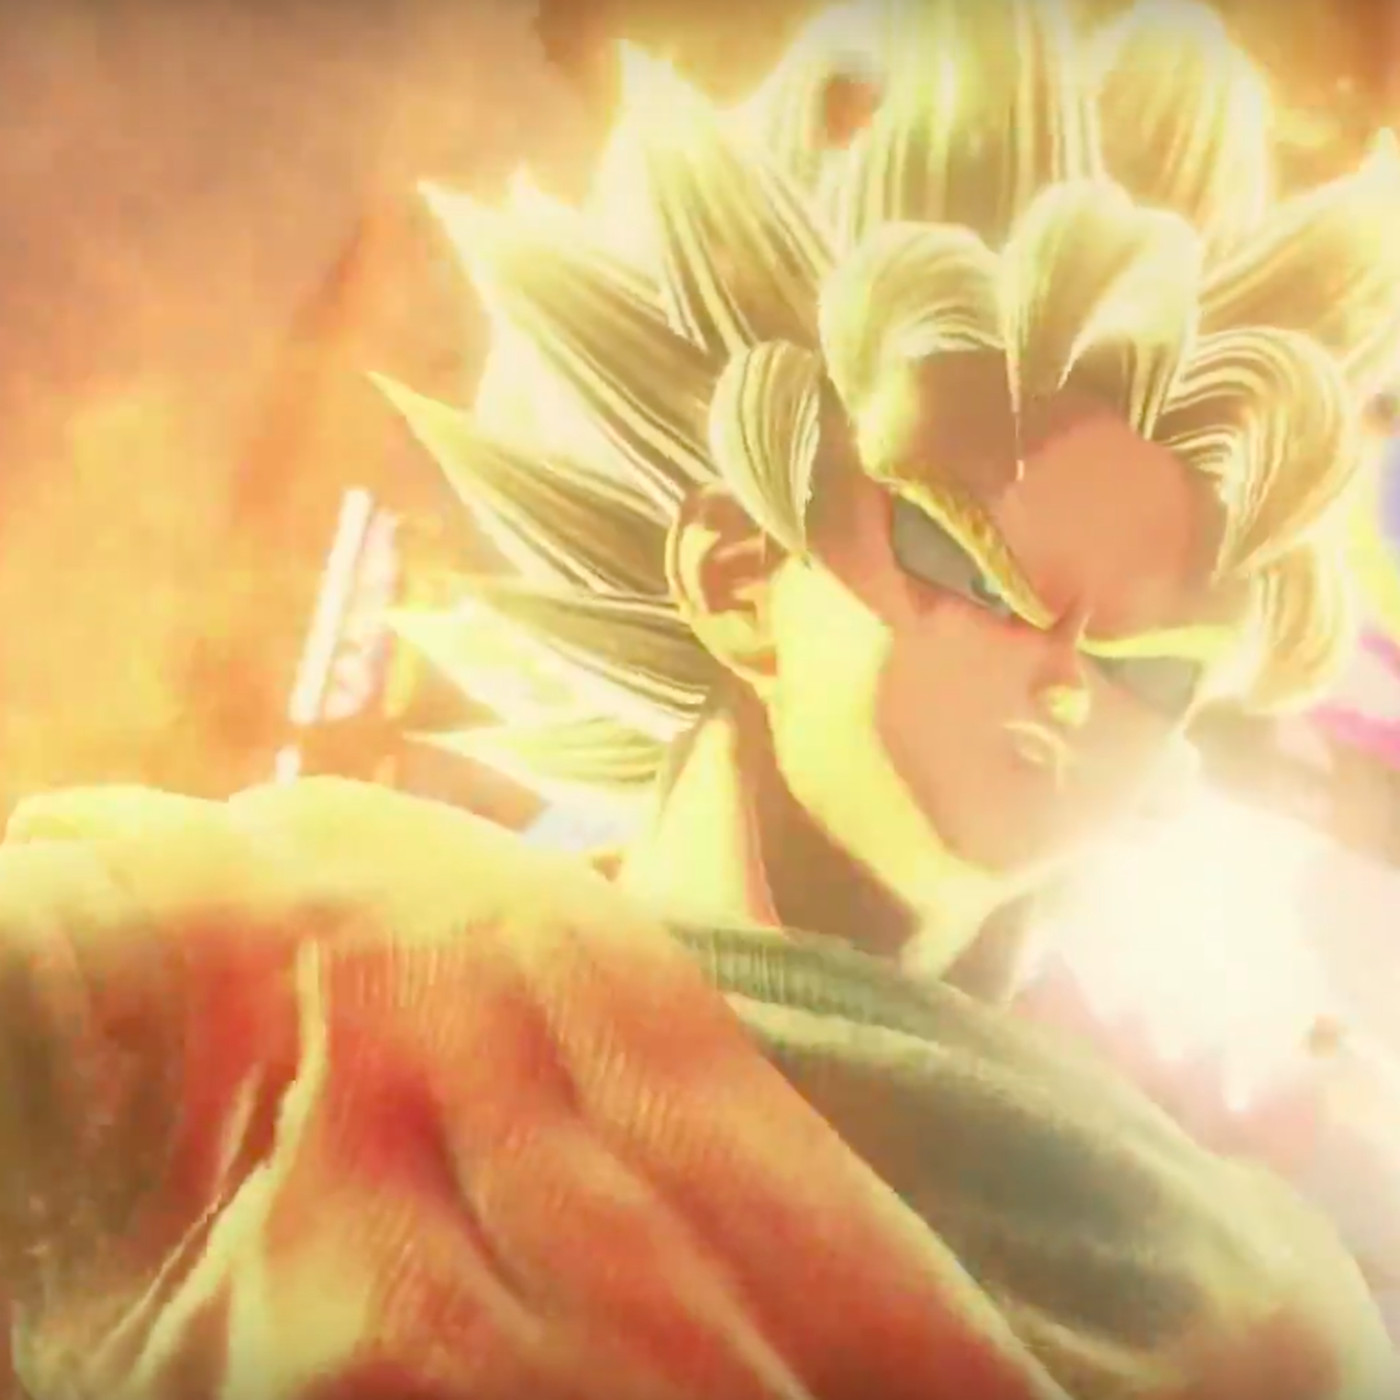 Jump Force is an anime brawler starring Goku and Naruto, along with